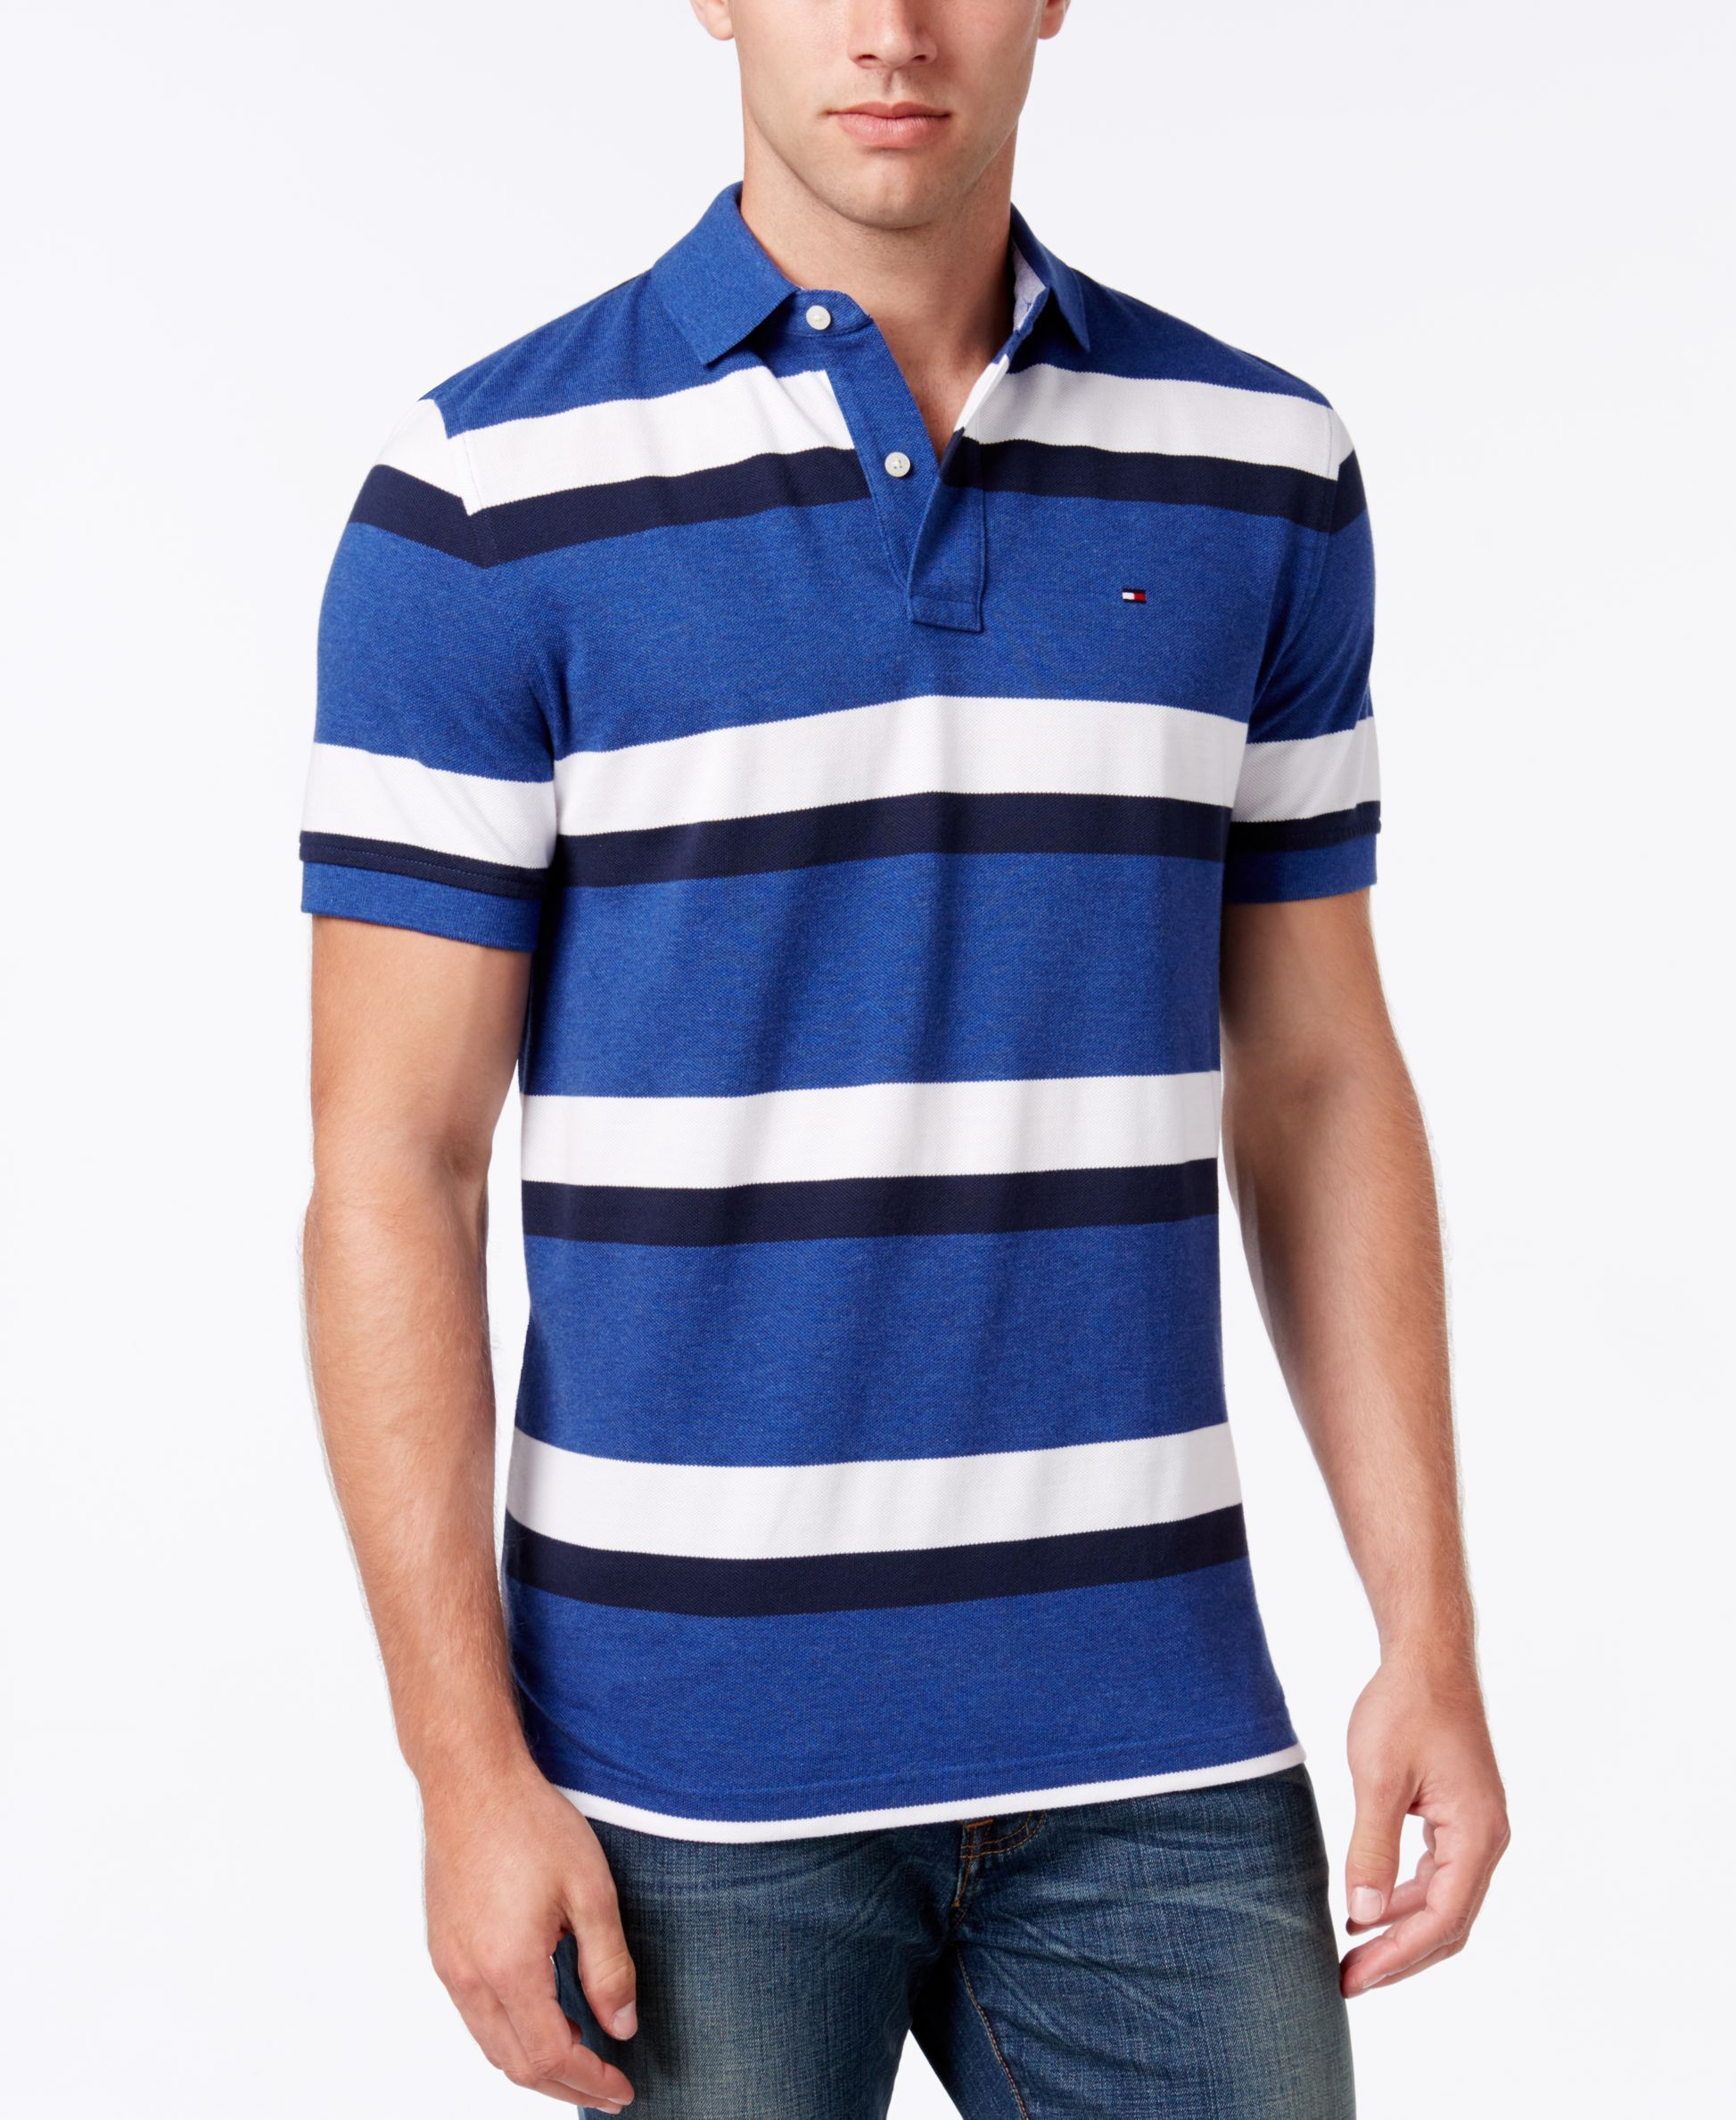 8c2ec54f8 Tommy Hilfiger Men s Ace Striped Polo